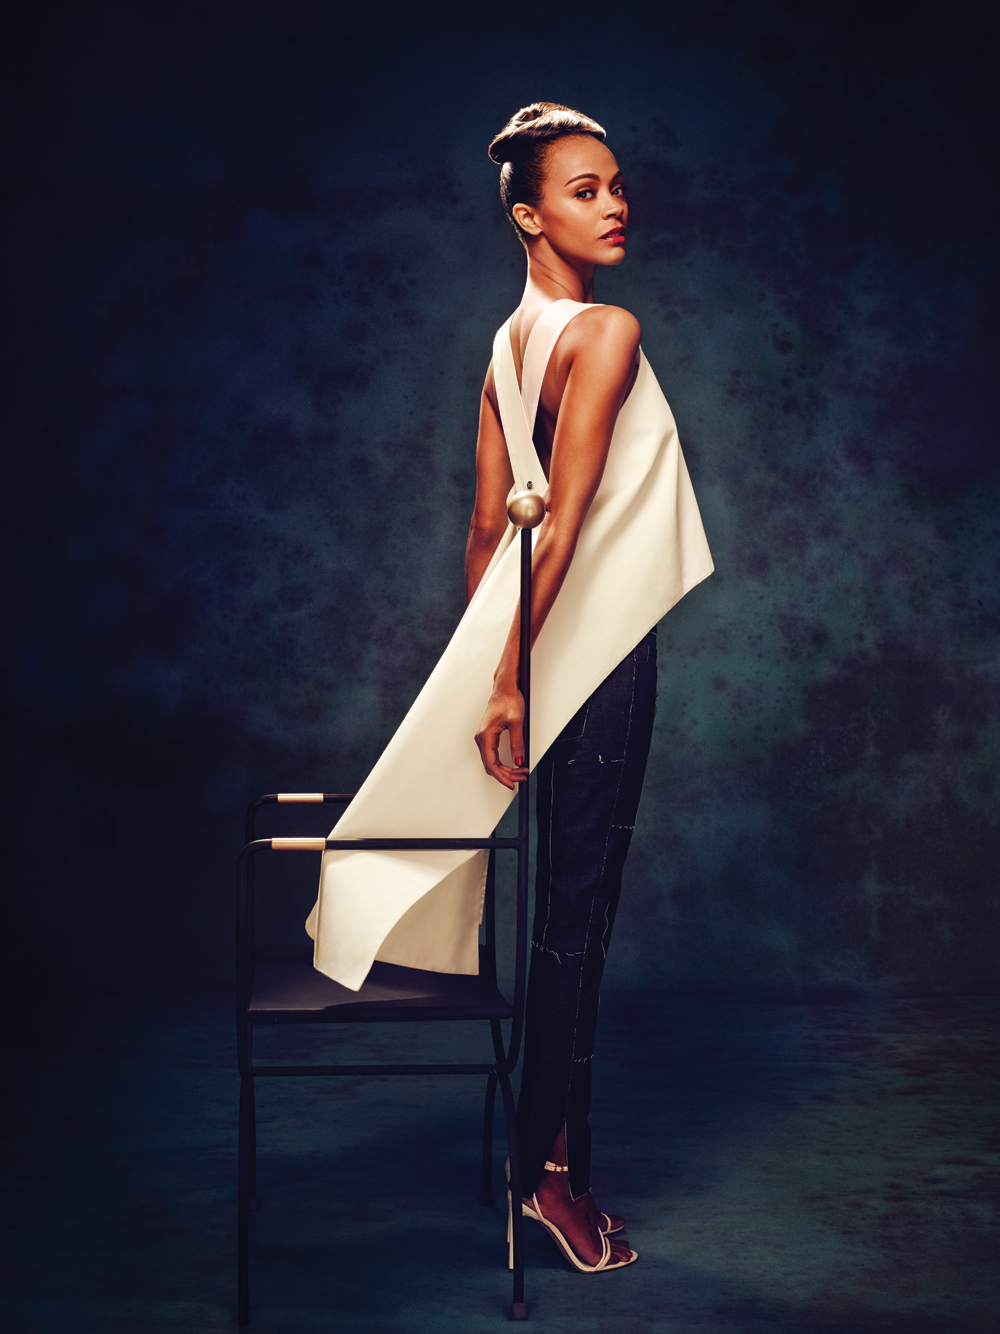 zoe-saldana-by-james-white-for-flare-magazine-1